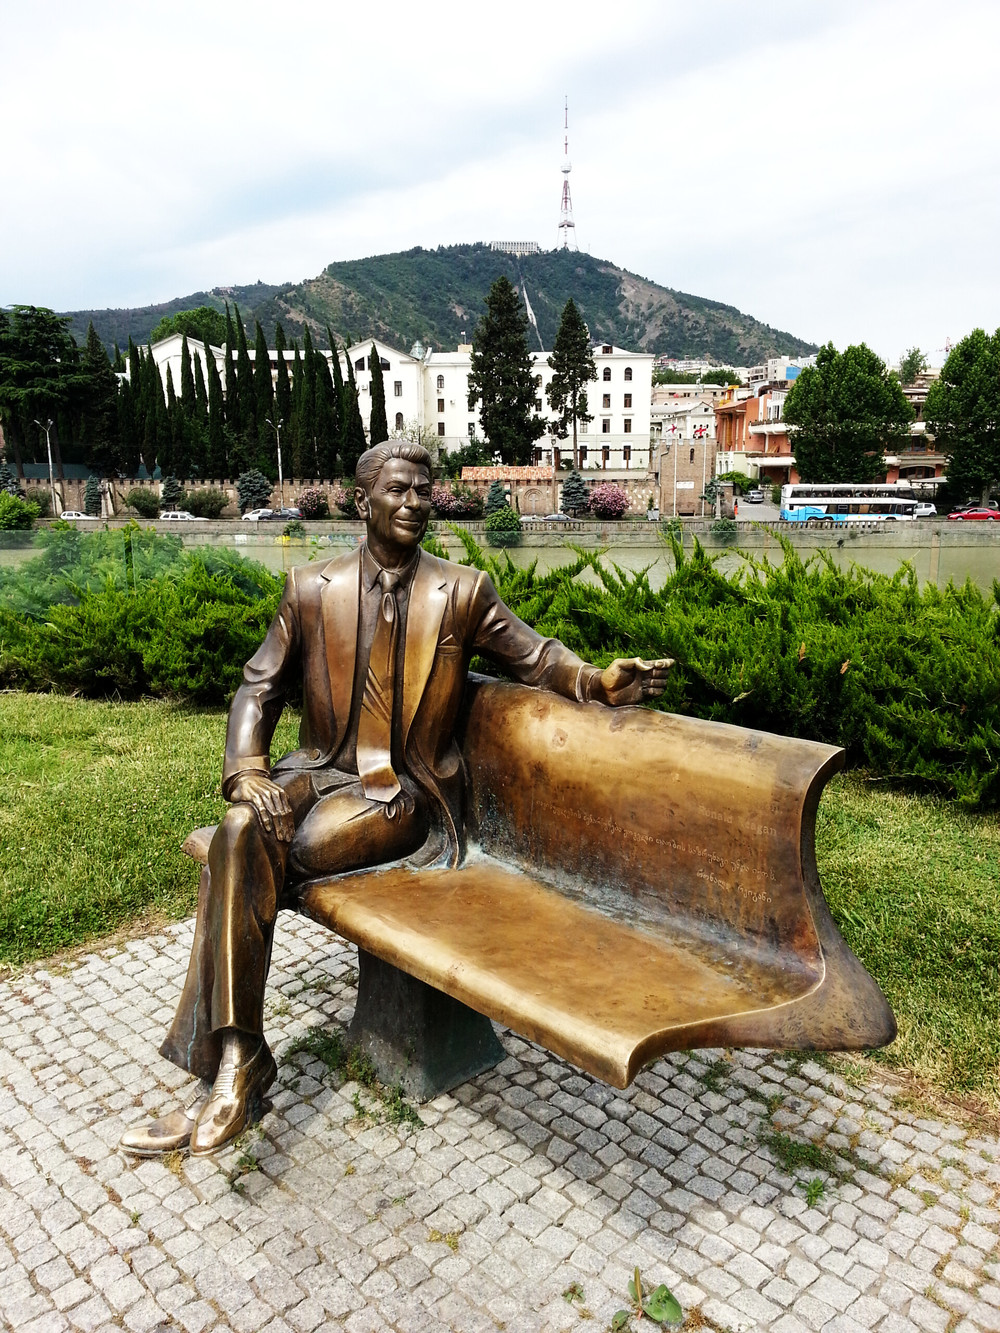 Ronald Reagan Statue in Tbilisi.